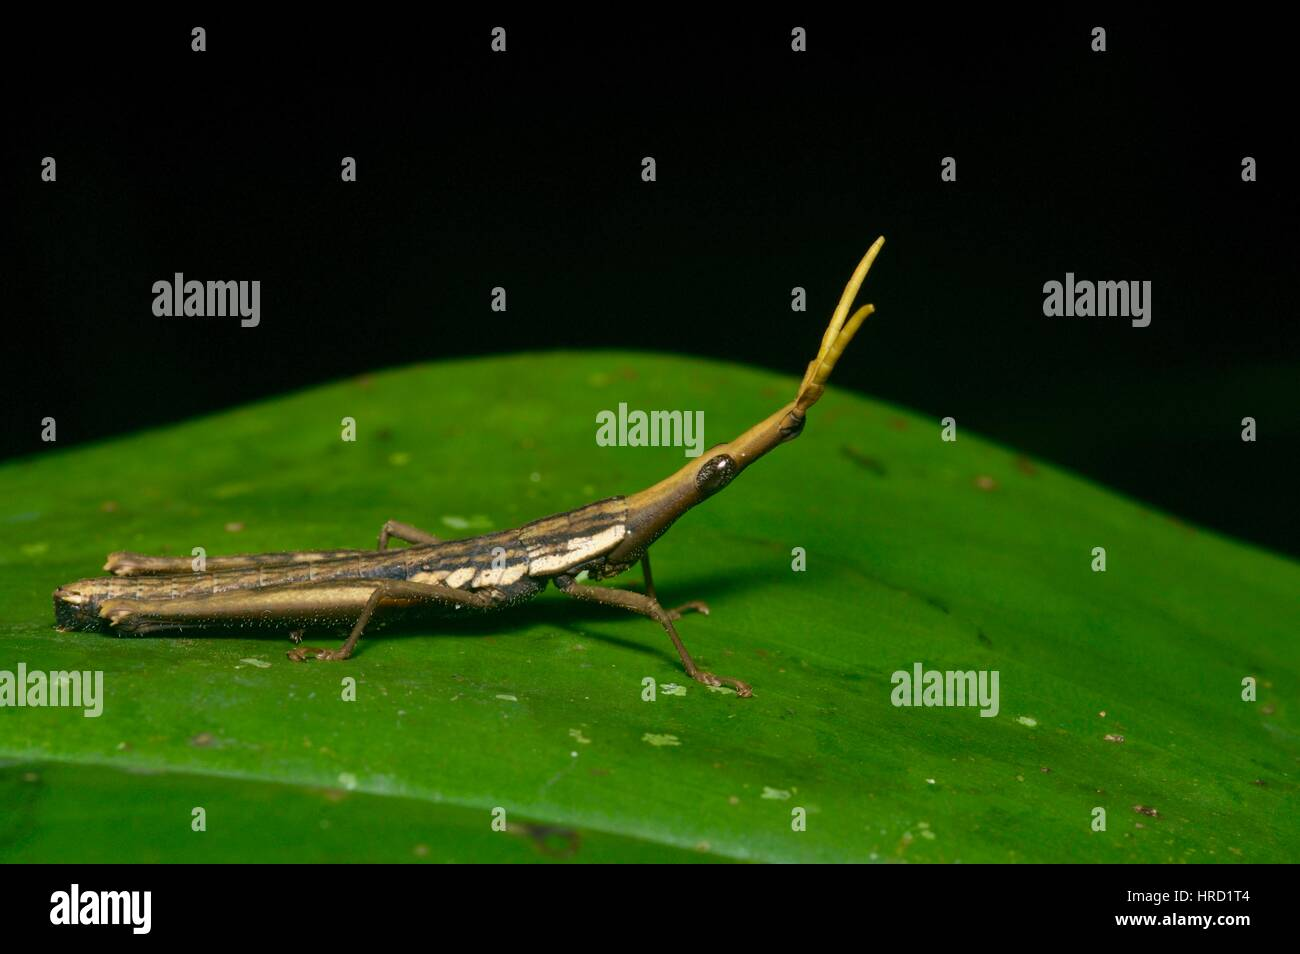 A Gaudy Grasshopper (family Pyrgomorphidae) in the Amazon rainforest in Loreto, Peru - Stock Image